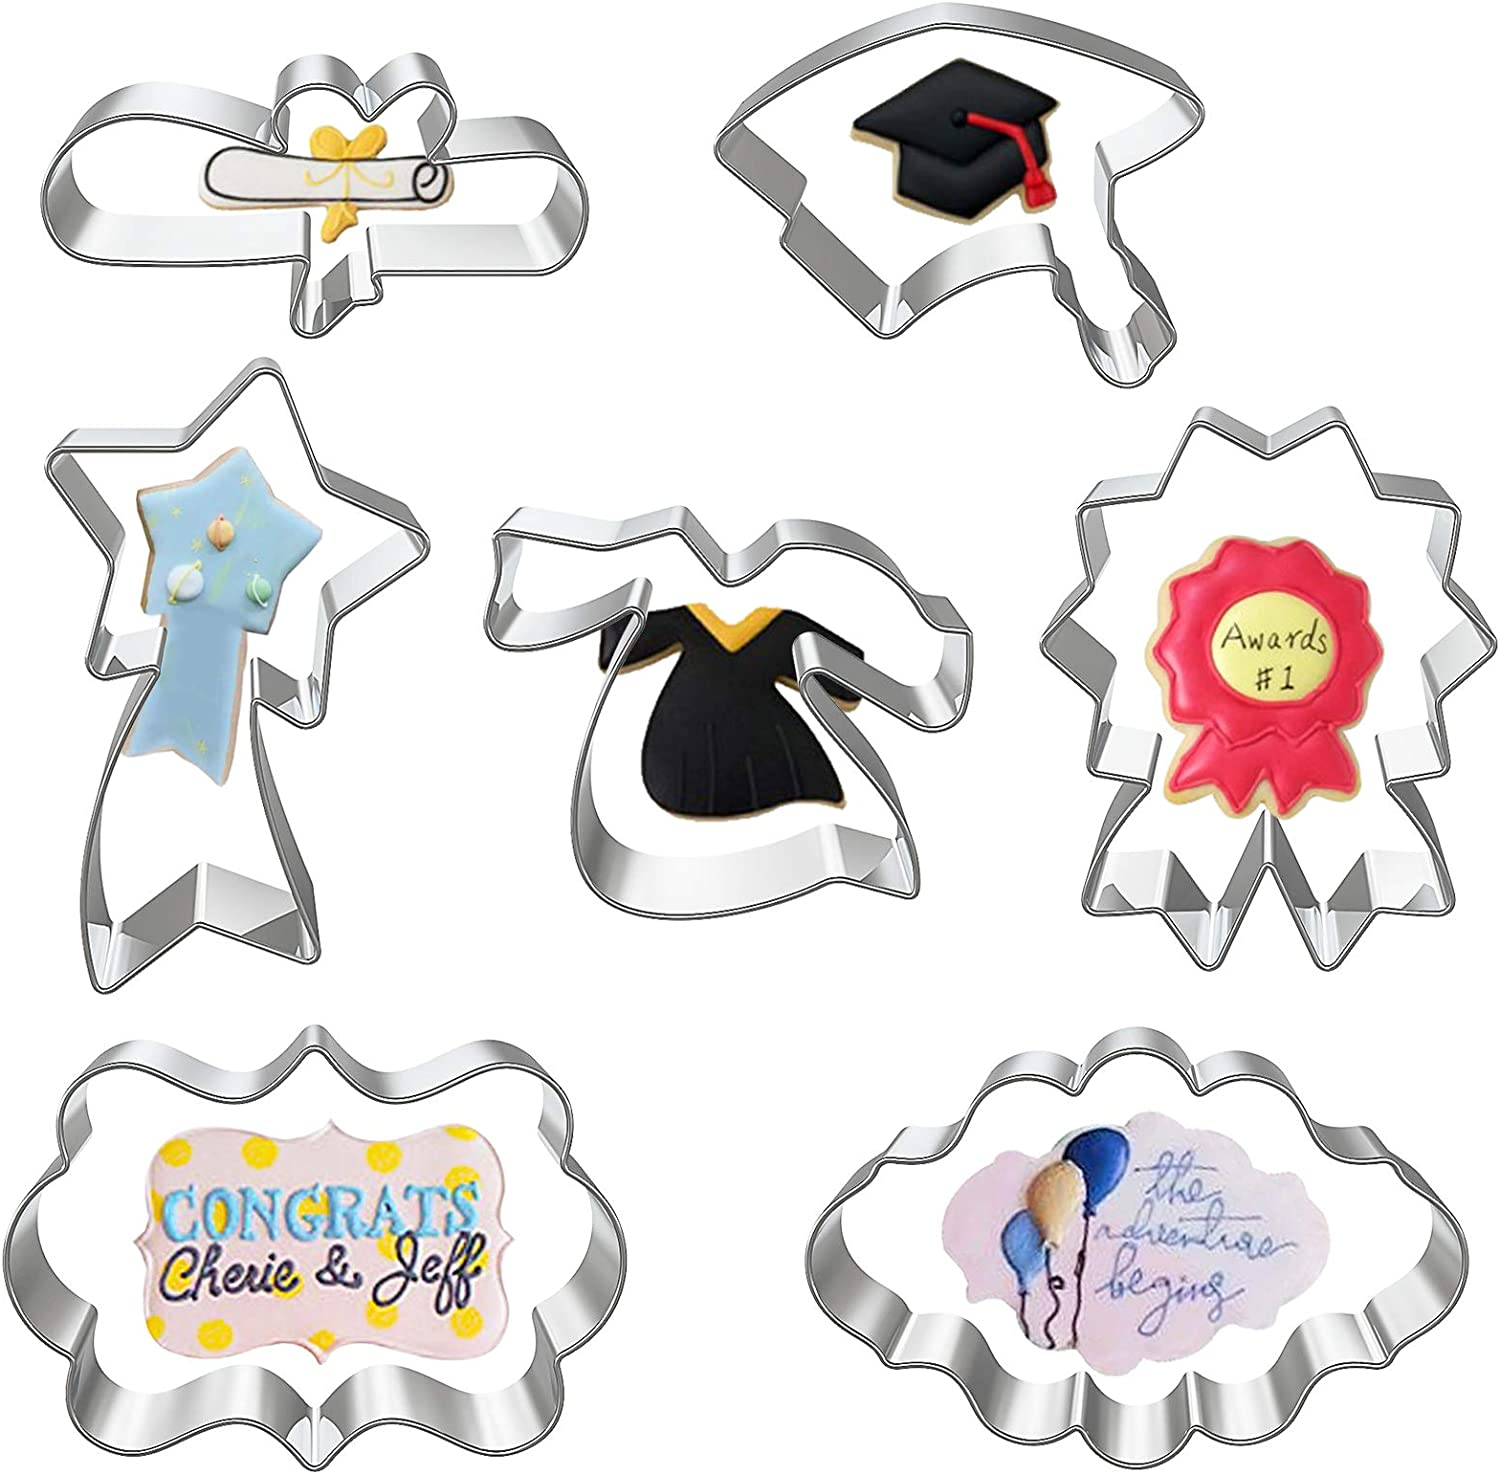 Hibery 7 Pcs Graduation Cookie Cutter - Bachelor Uniform, Bachelor Hat, Certificate, Medal, Star Trophy, Blessing Boxes Star Cookie Cutters for Cakes, Biscuits, Graduate Party, Decoration Supplies